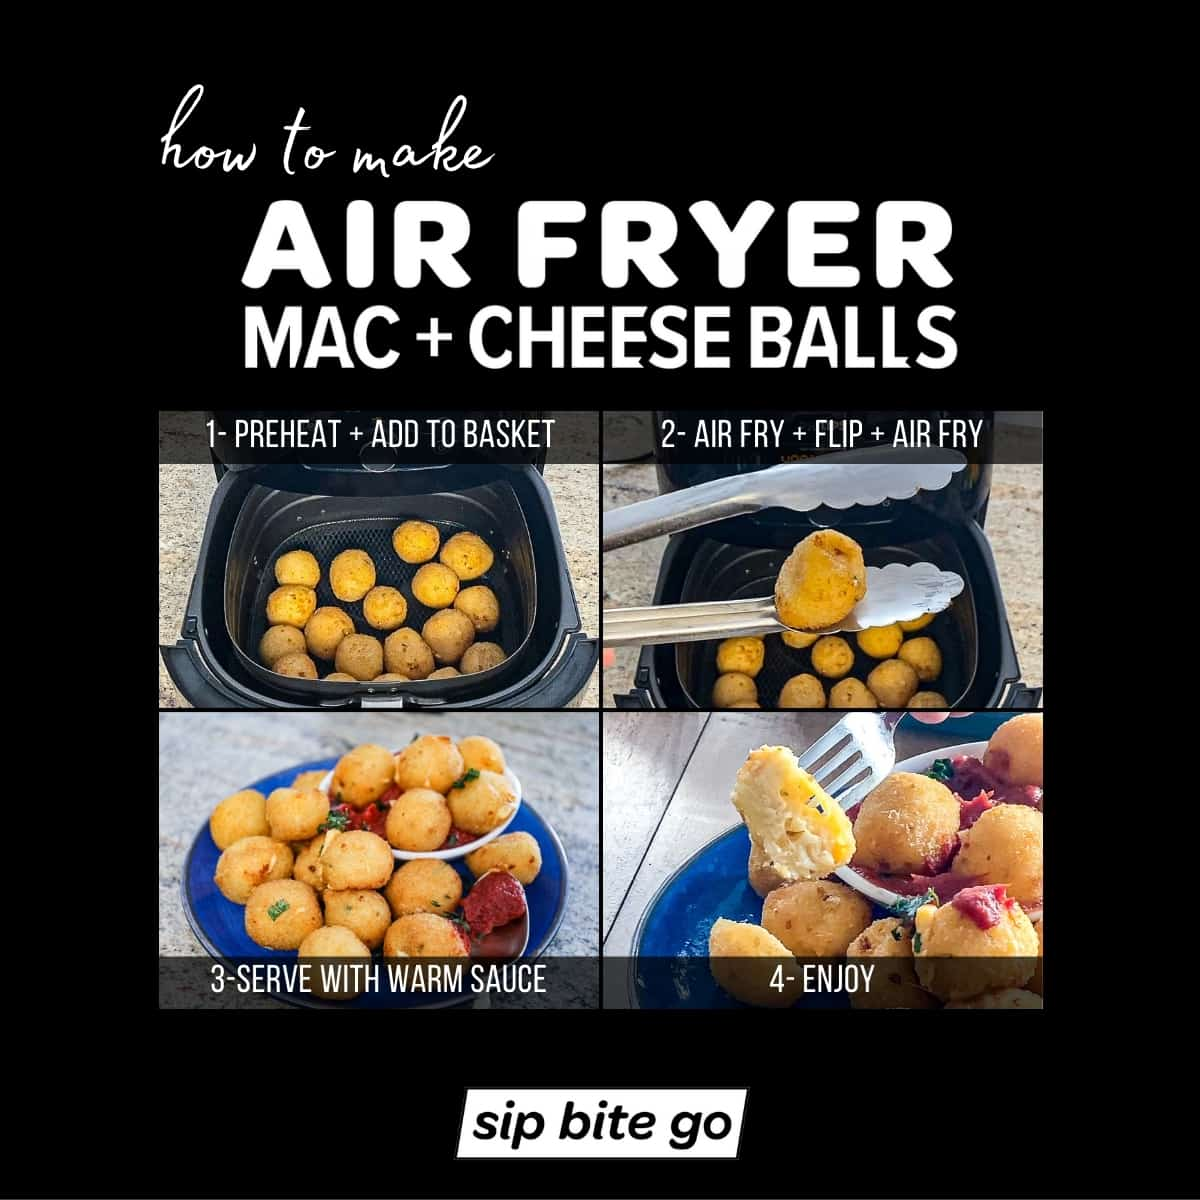 Infographic demonstrating how to air fry mac and cheese balls